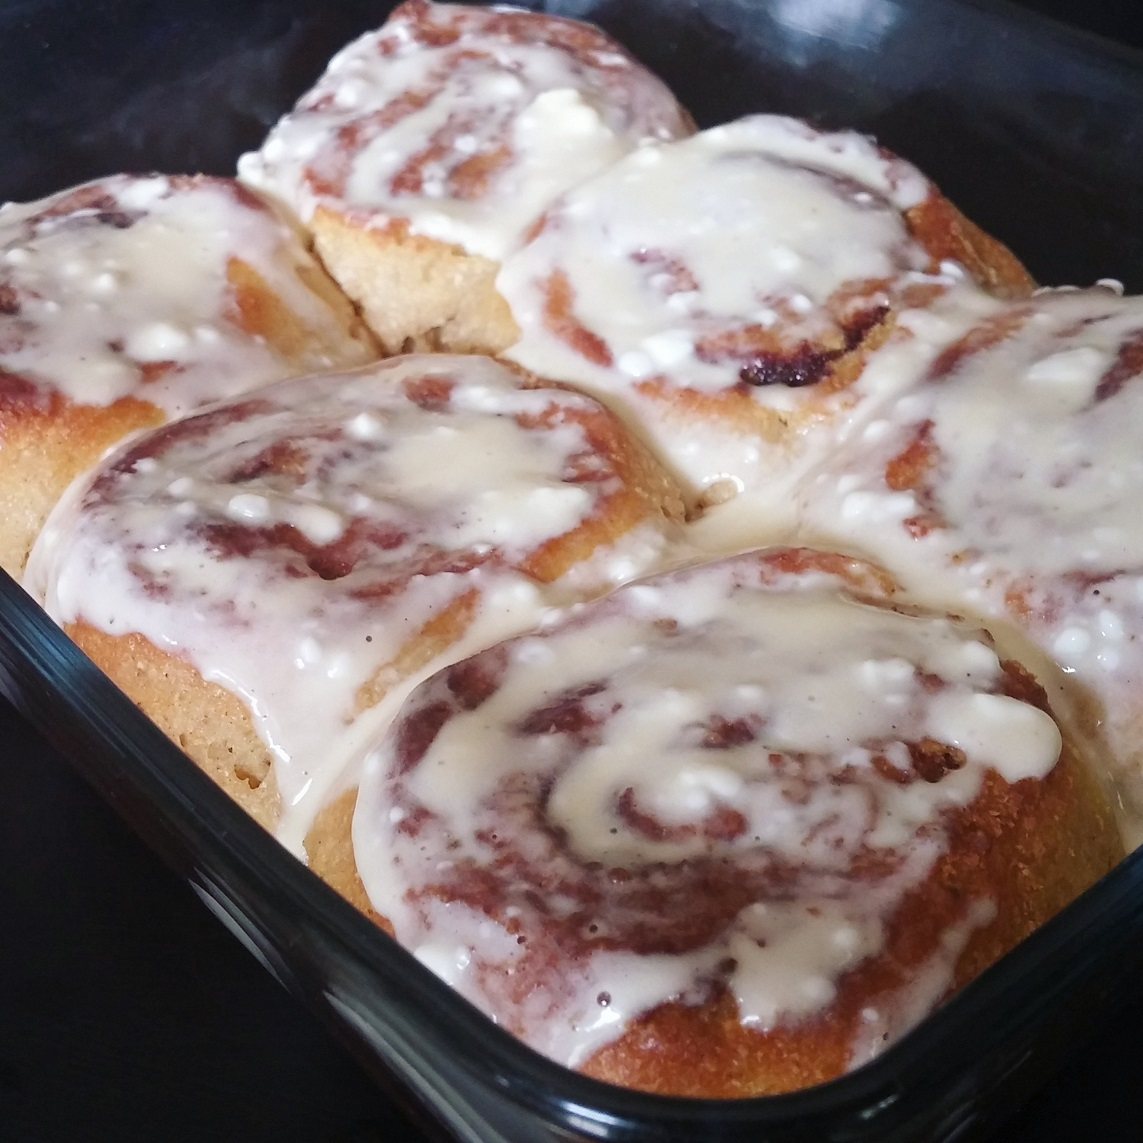 Low Carb Keto Cinnamon Rolls Tryketowith Me